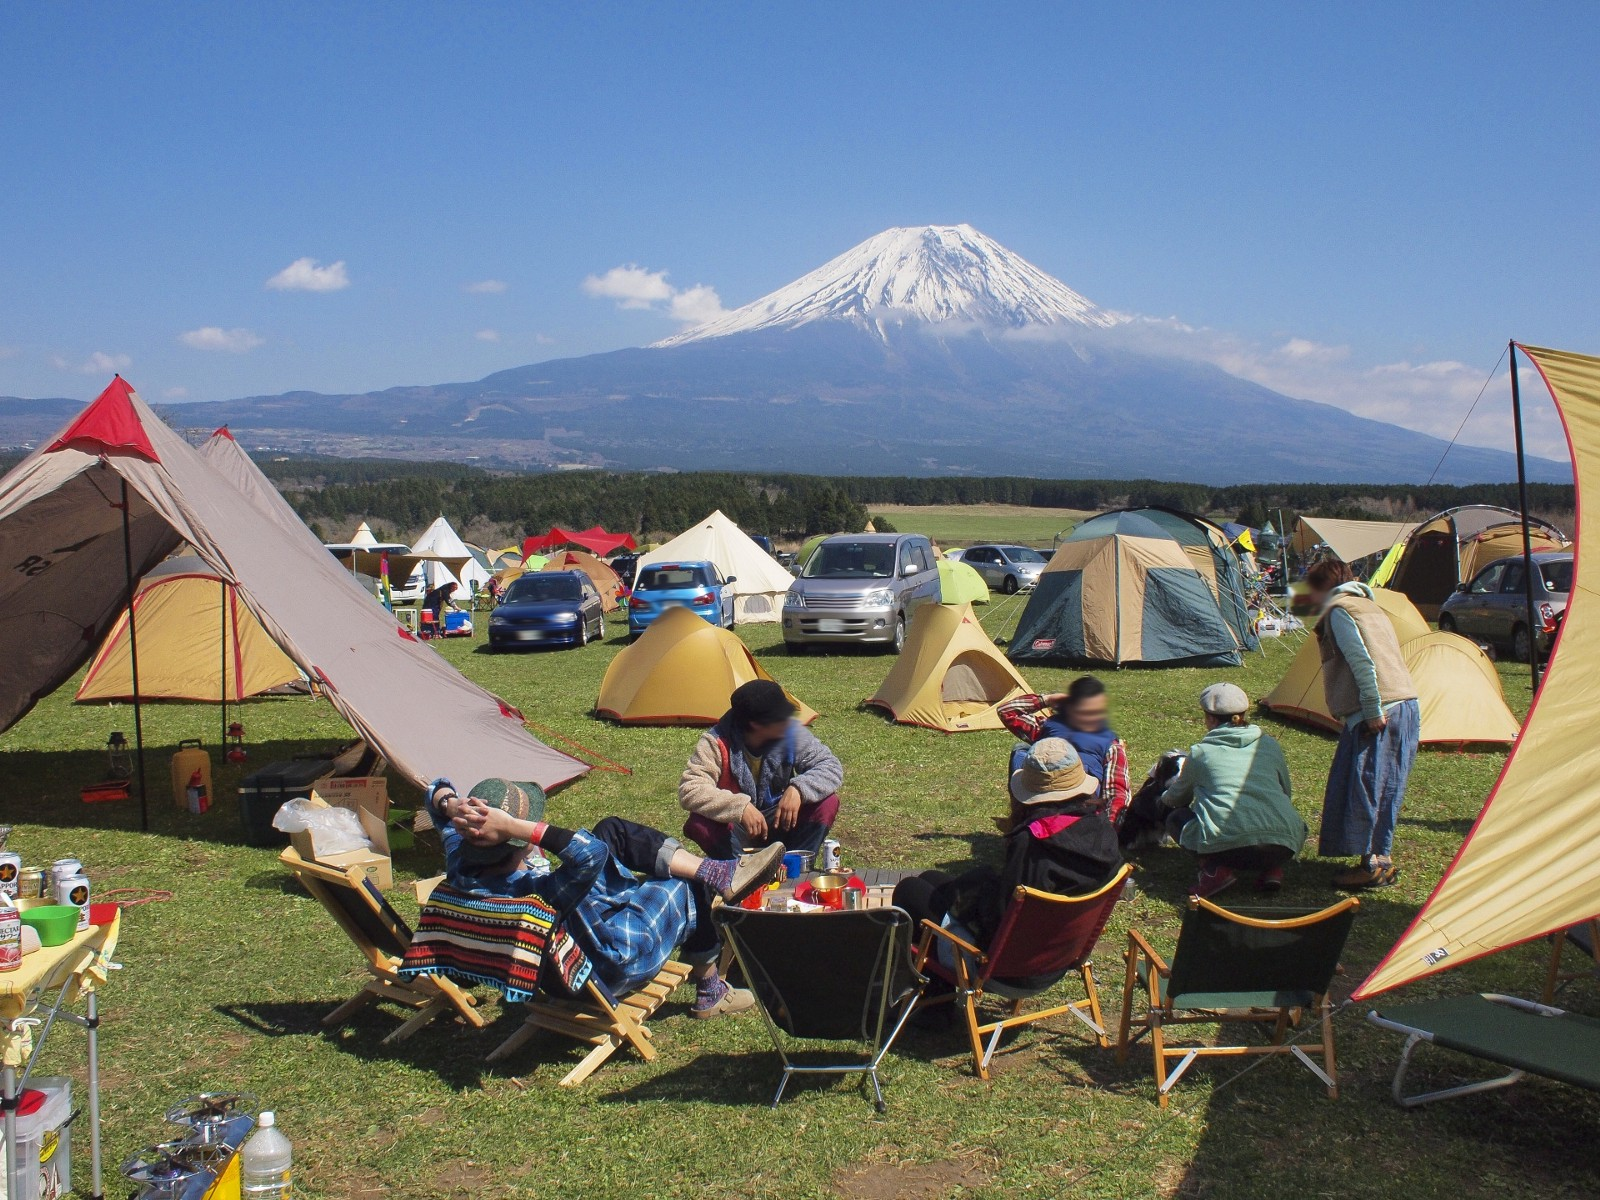 Camping on the foot of Mt Fuji